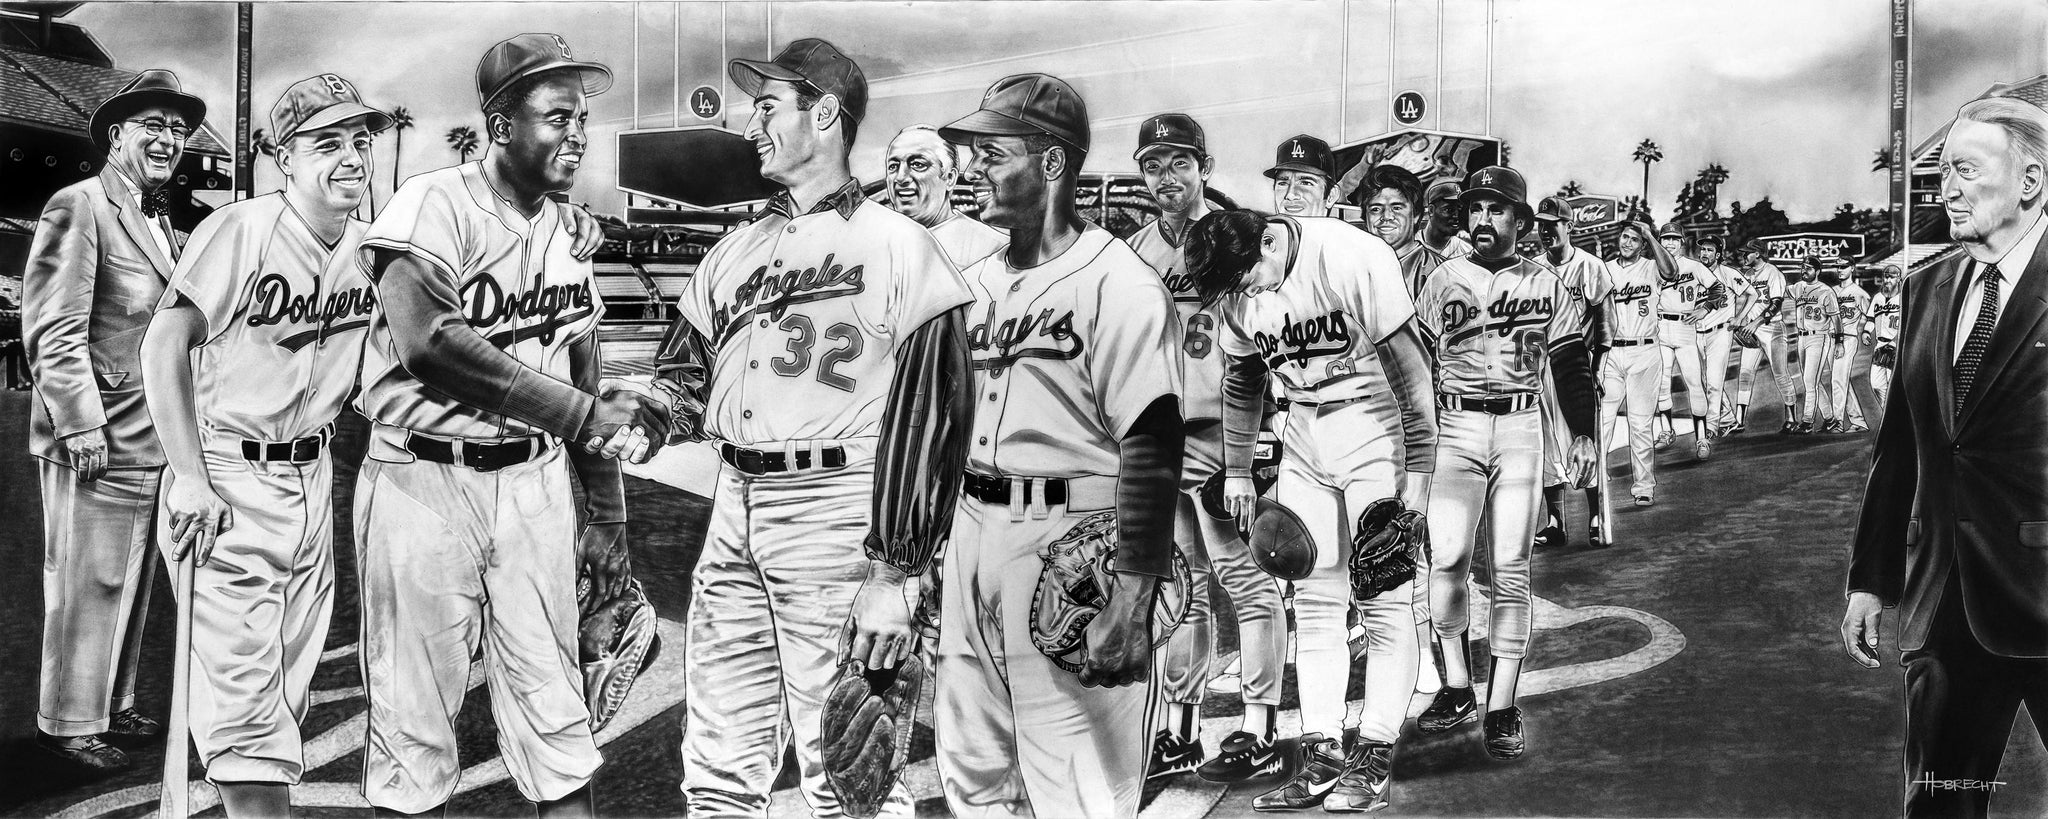 The All-Time Dodgers 2nd Base Jackie Robinson Painting Game Changer by Dave Hobrecht